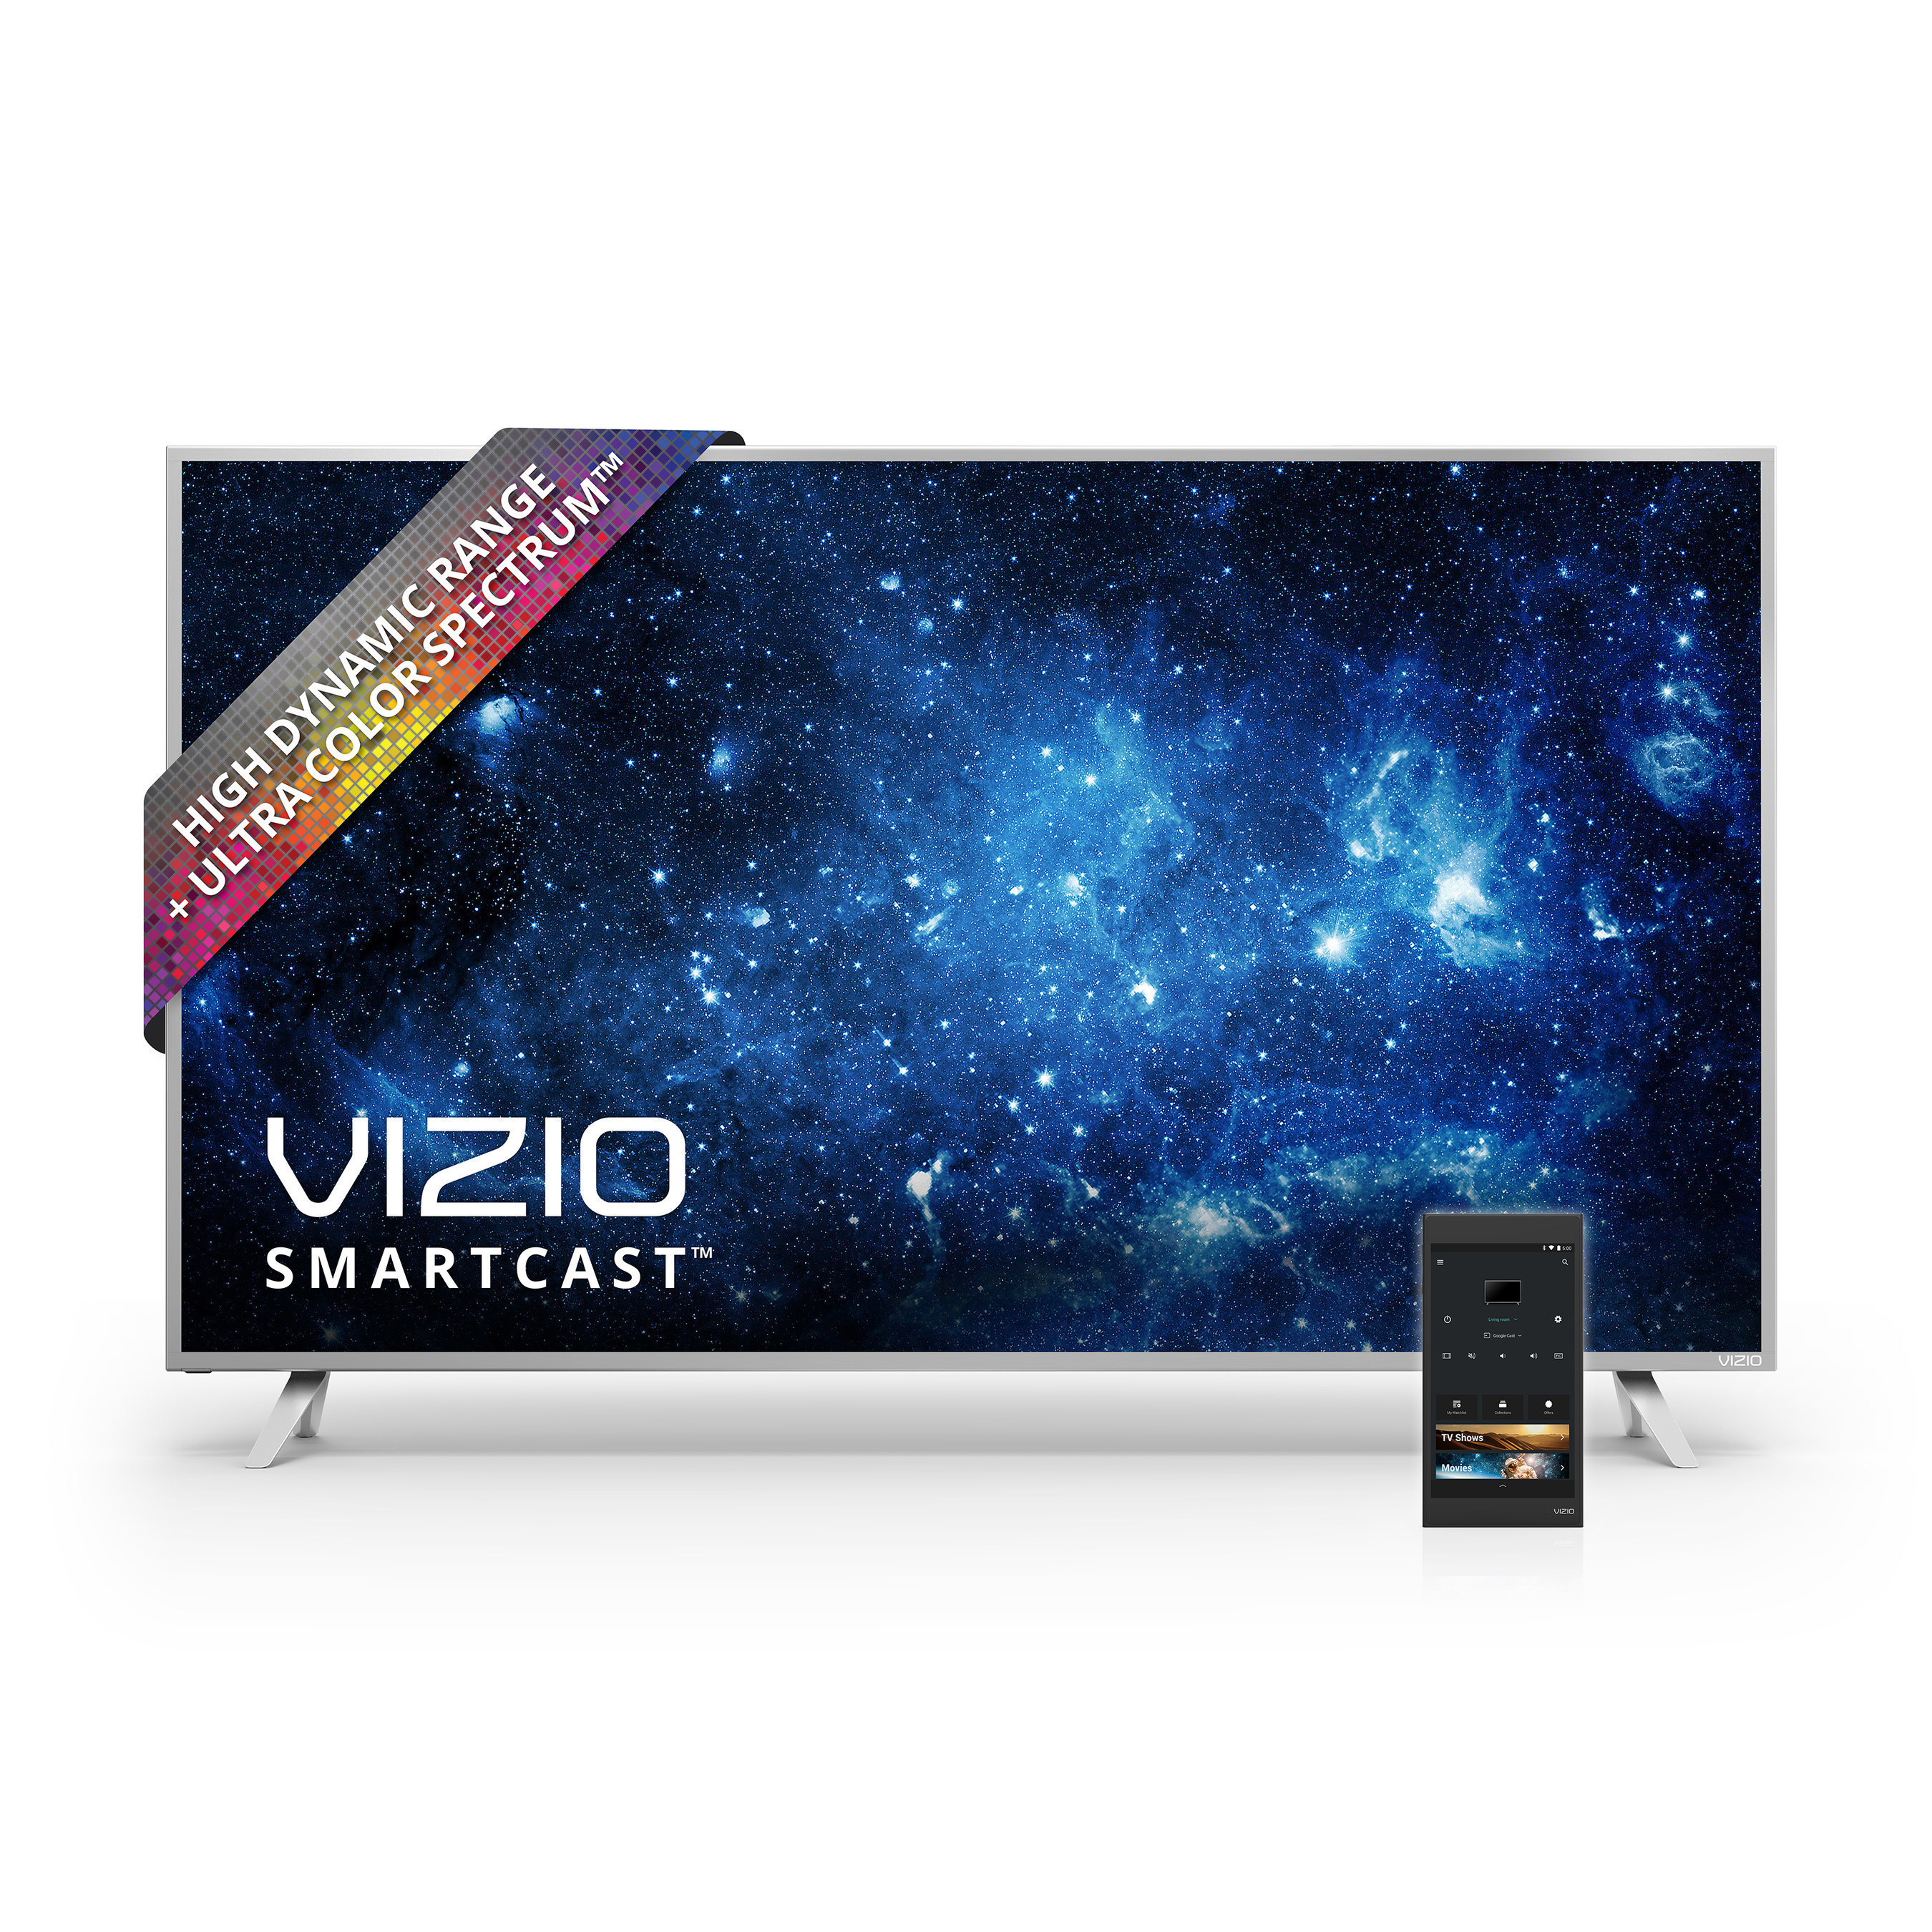 VIZIO Begins Roll Out of Updated Firmware for VIZIO